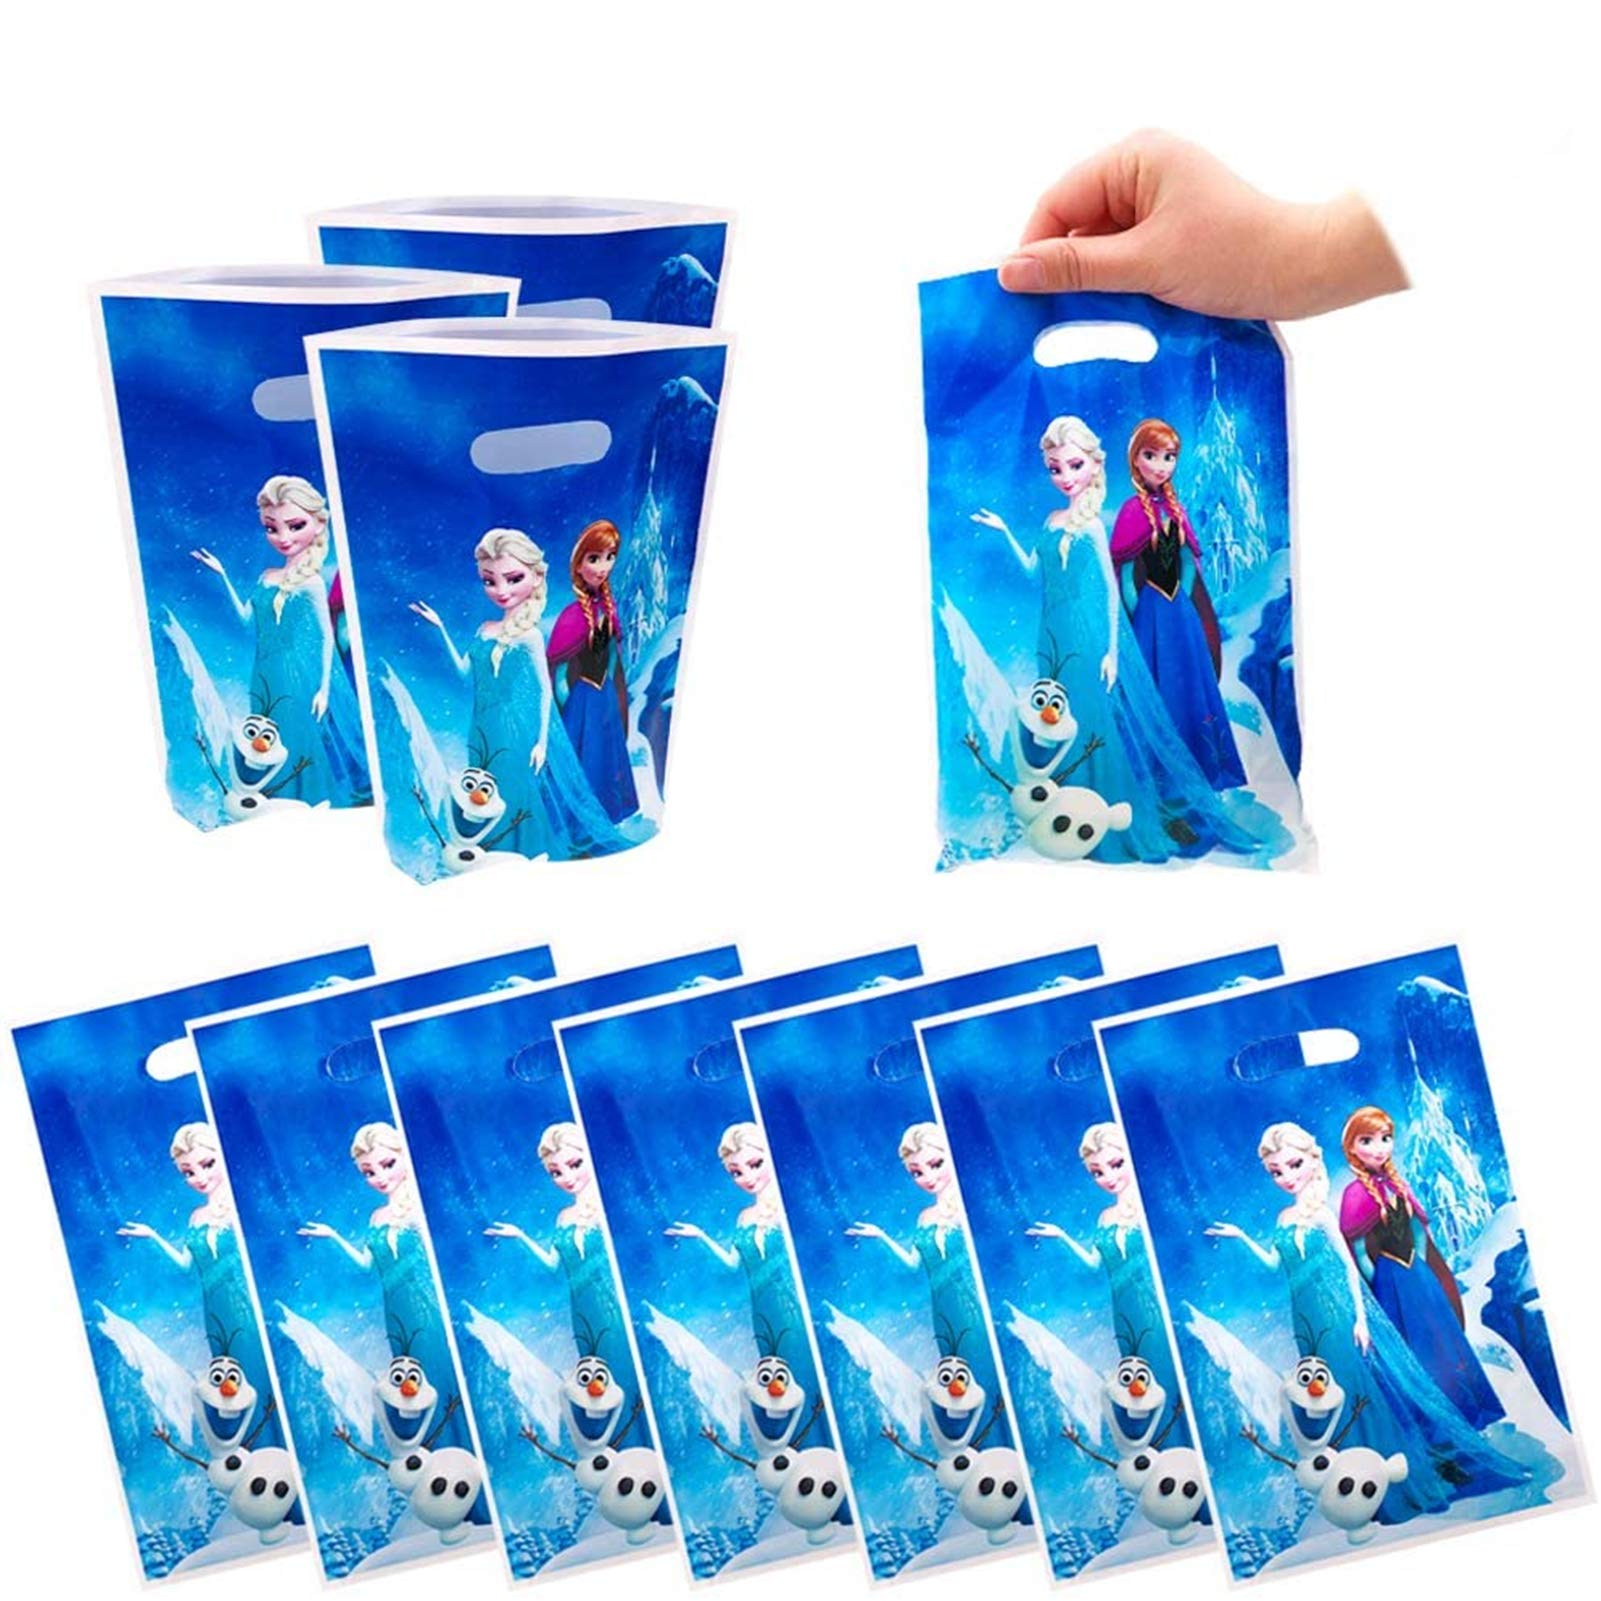 50 Packs Frozen Princess Cute Party Gift Bags, Frozen Gift Bags Party Supplies for Kids Cute Frozen Princess Themed Party, Birthday Decoration Gift Bags Well for Girls or Boys